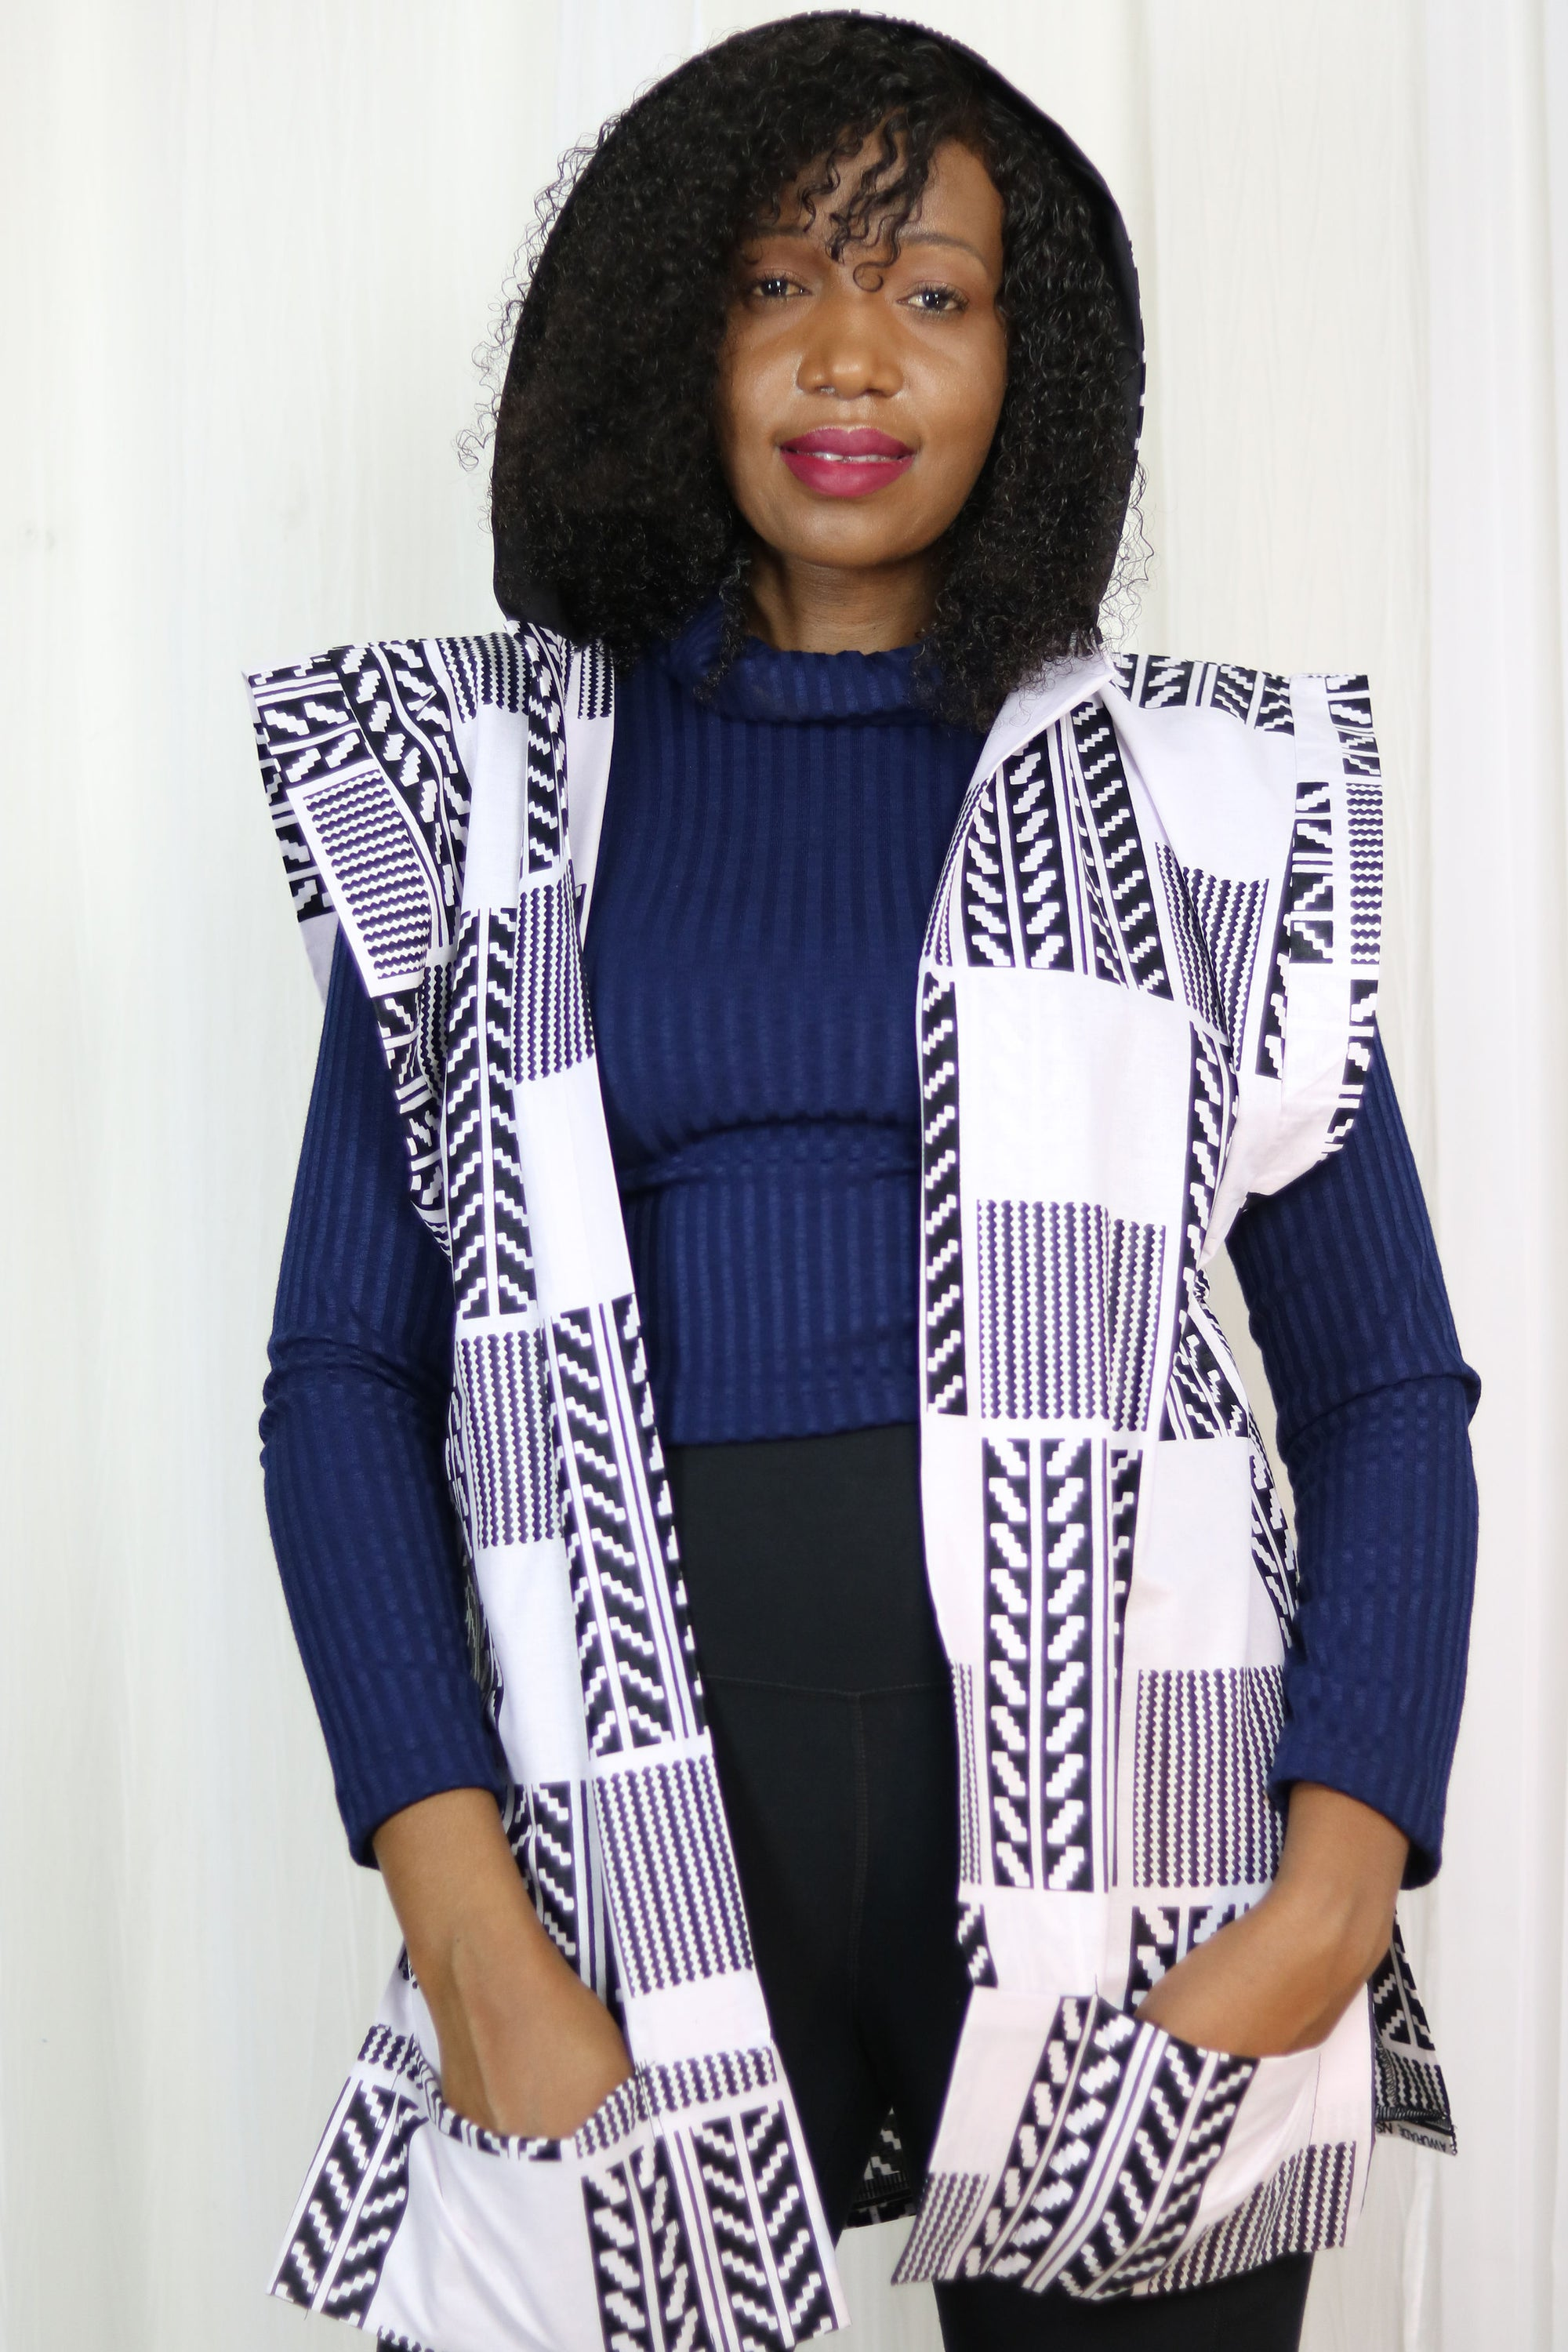 AFRICAN PRINT FALL SLEEVELESS HOODIE - WHITE/BLACK KENTE PRINT